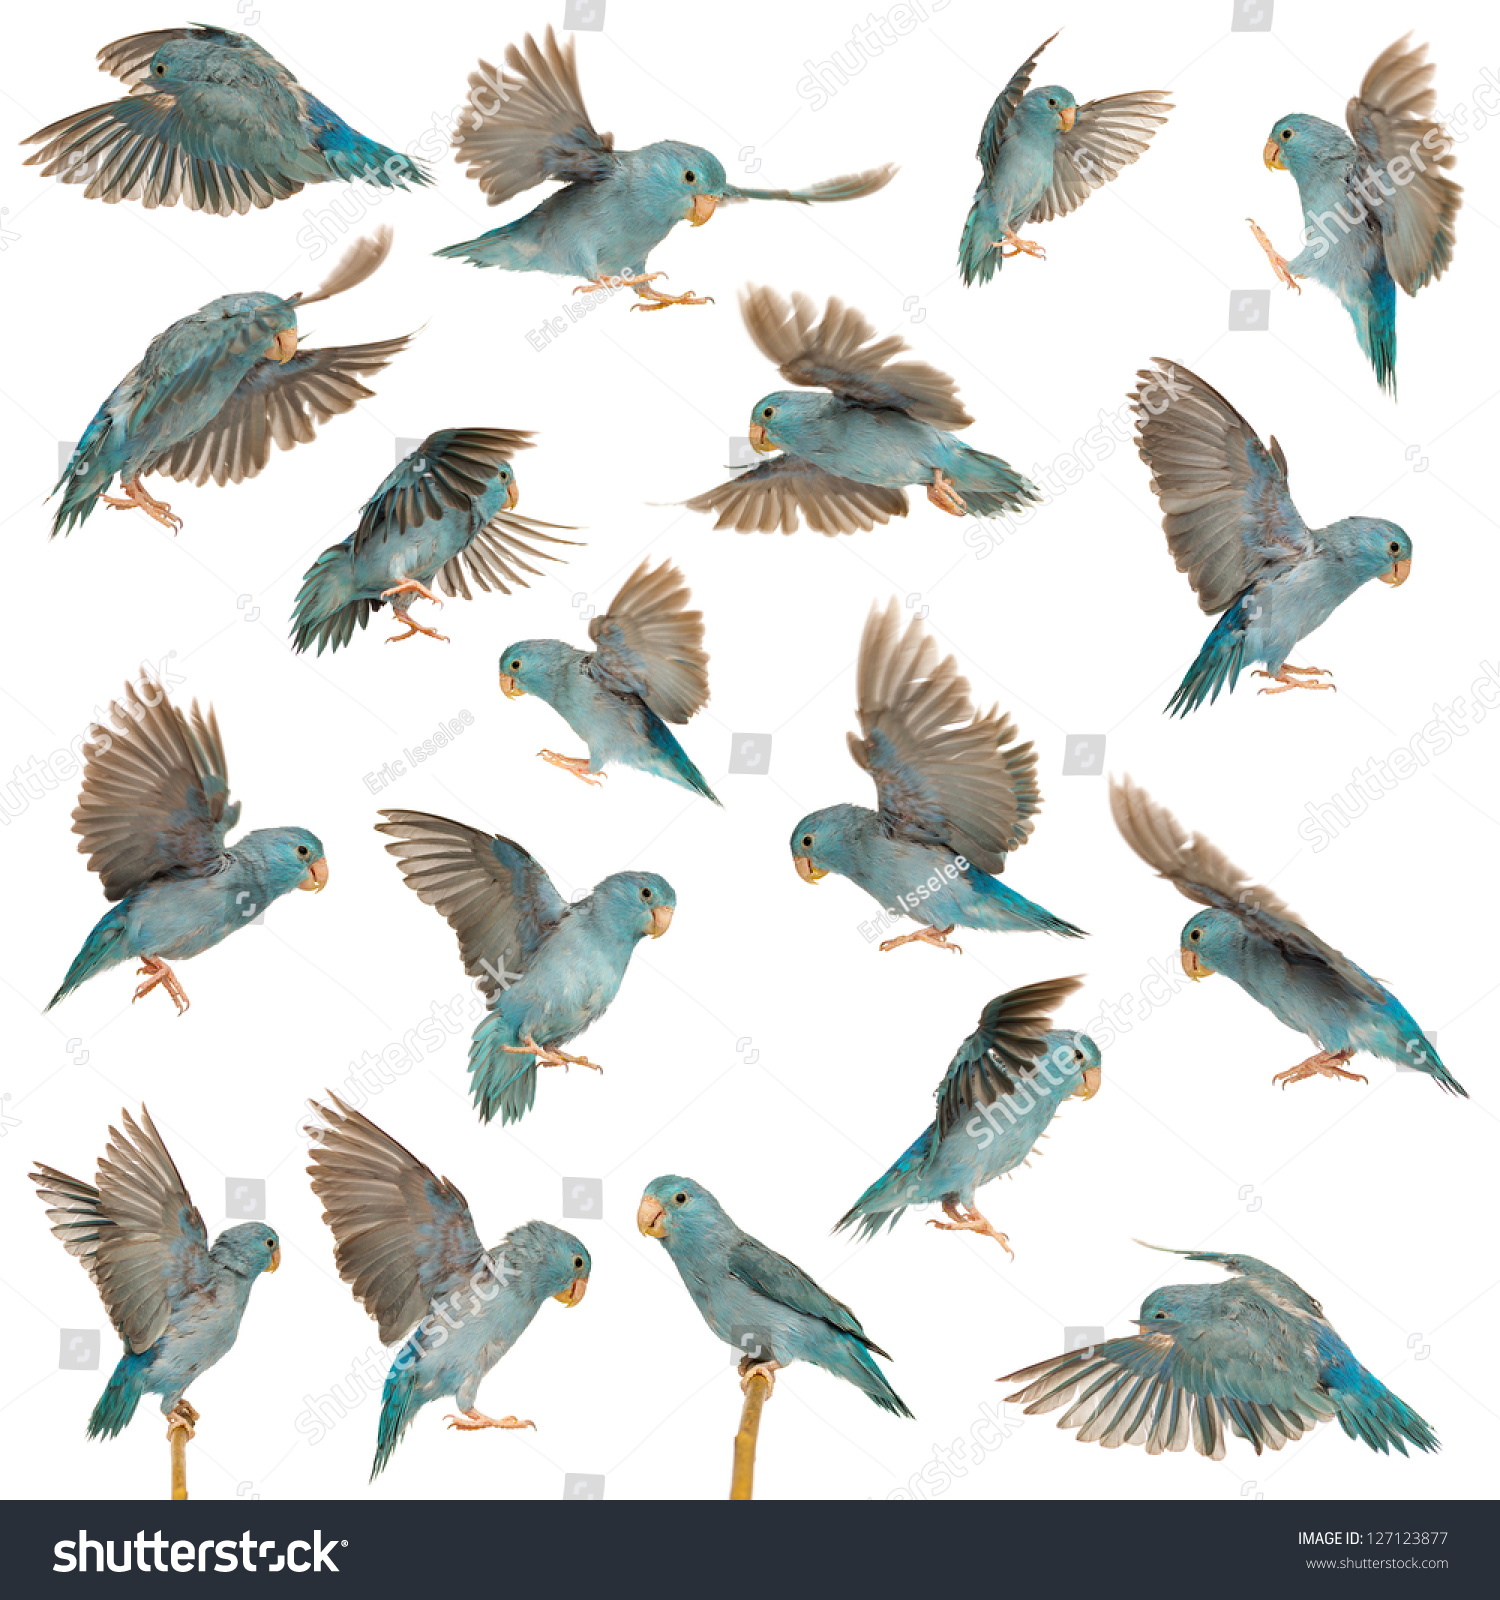 Royalty Free Composition Of Pacific Parrotlet 127123877 Stock